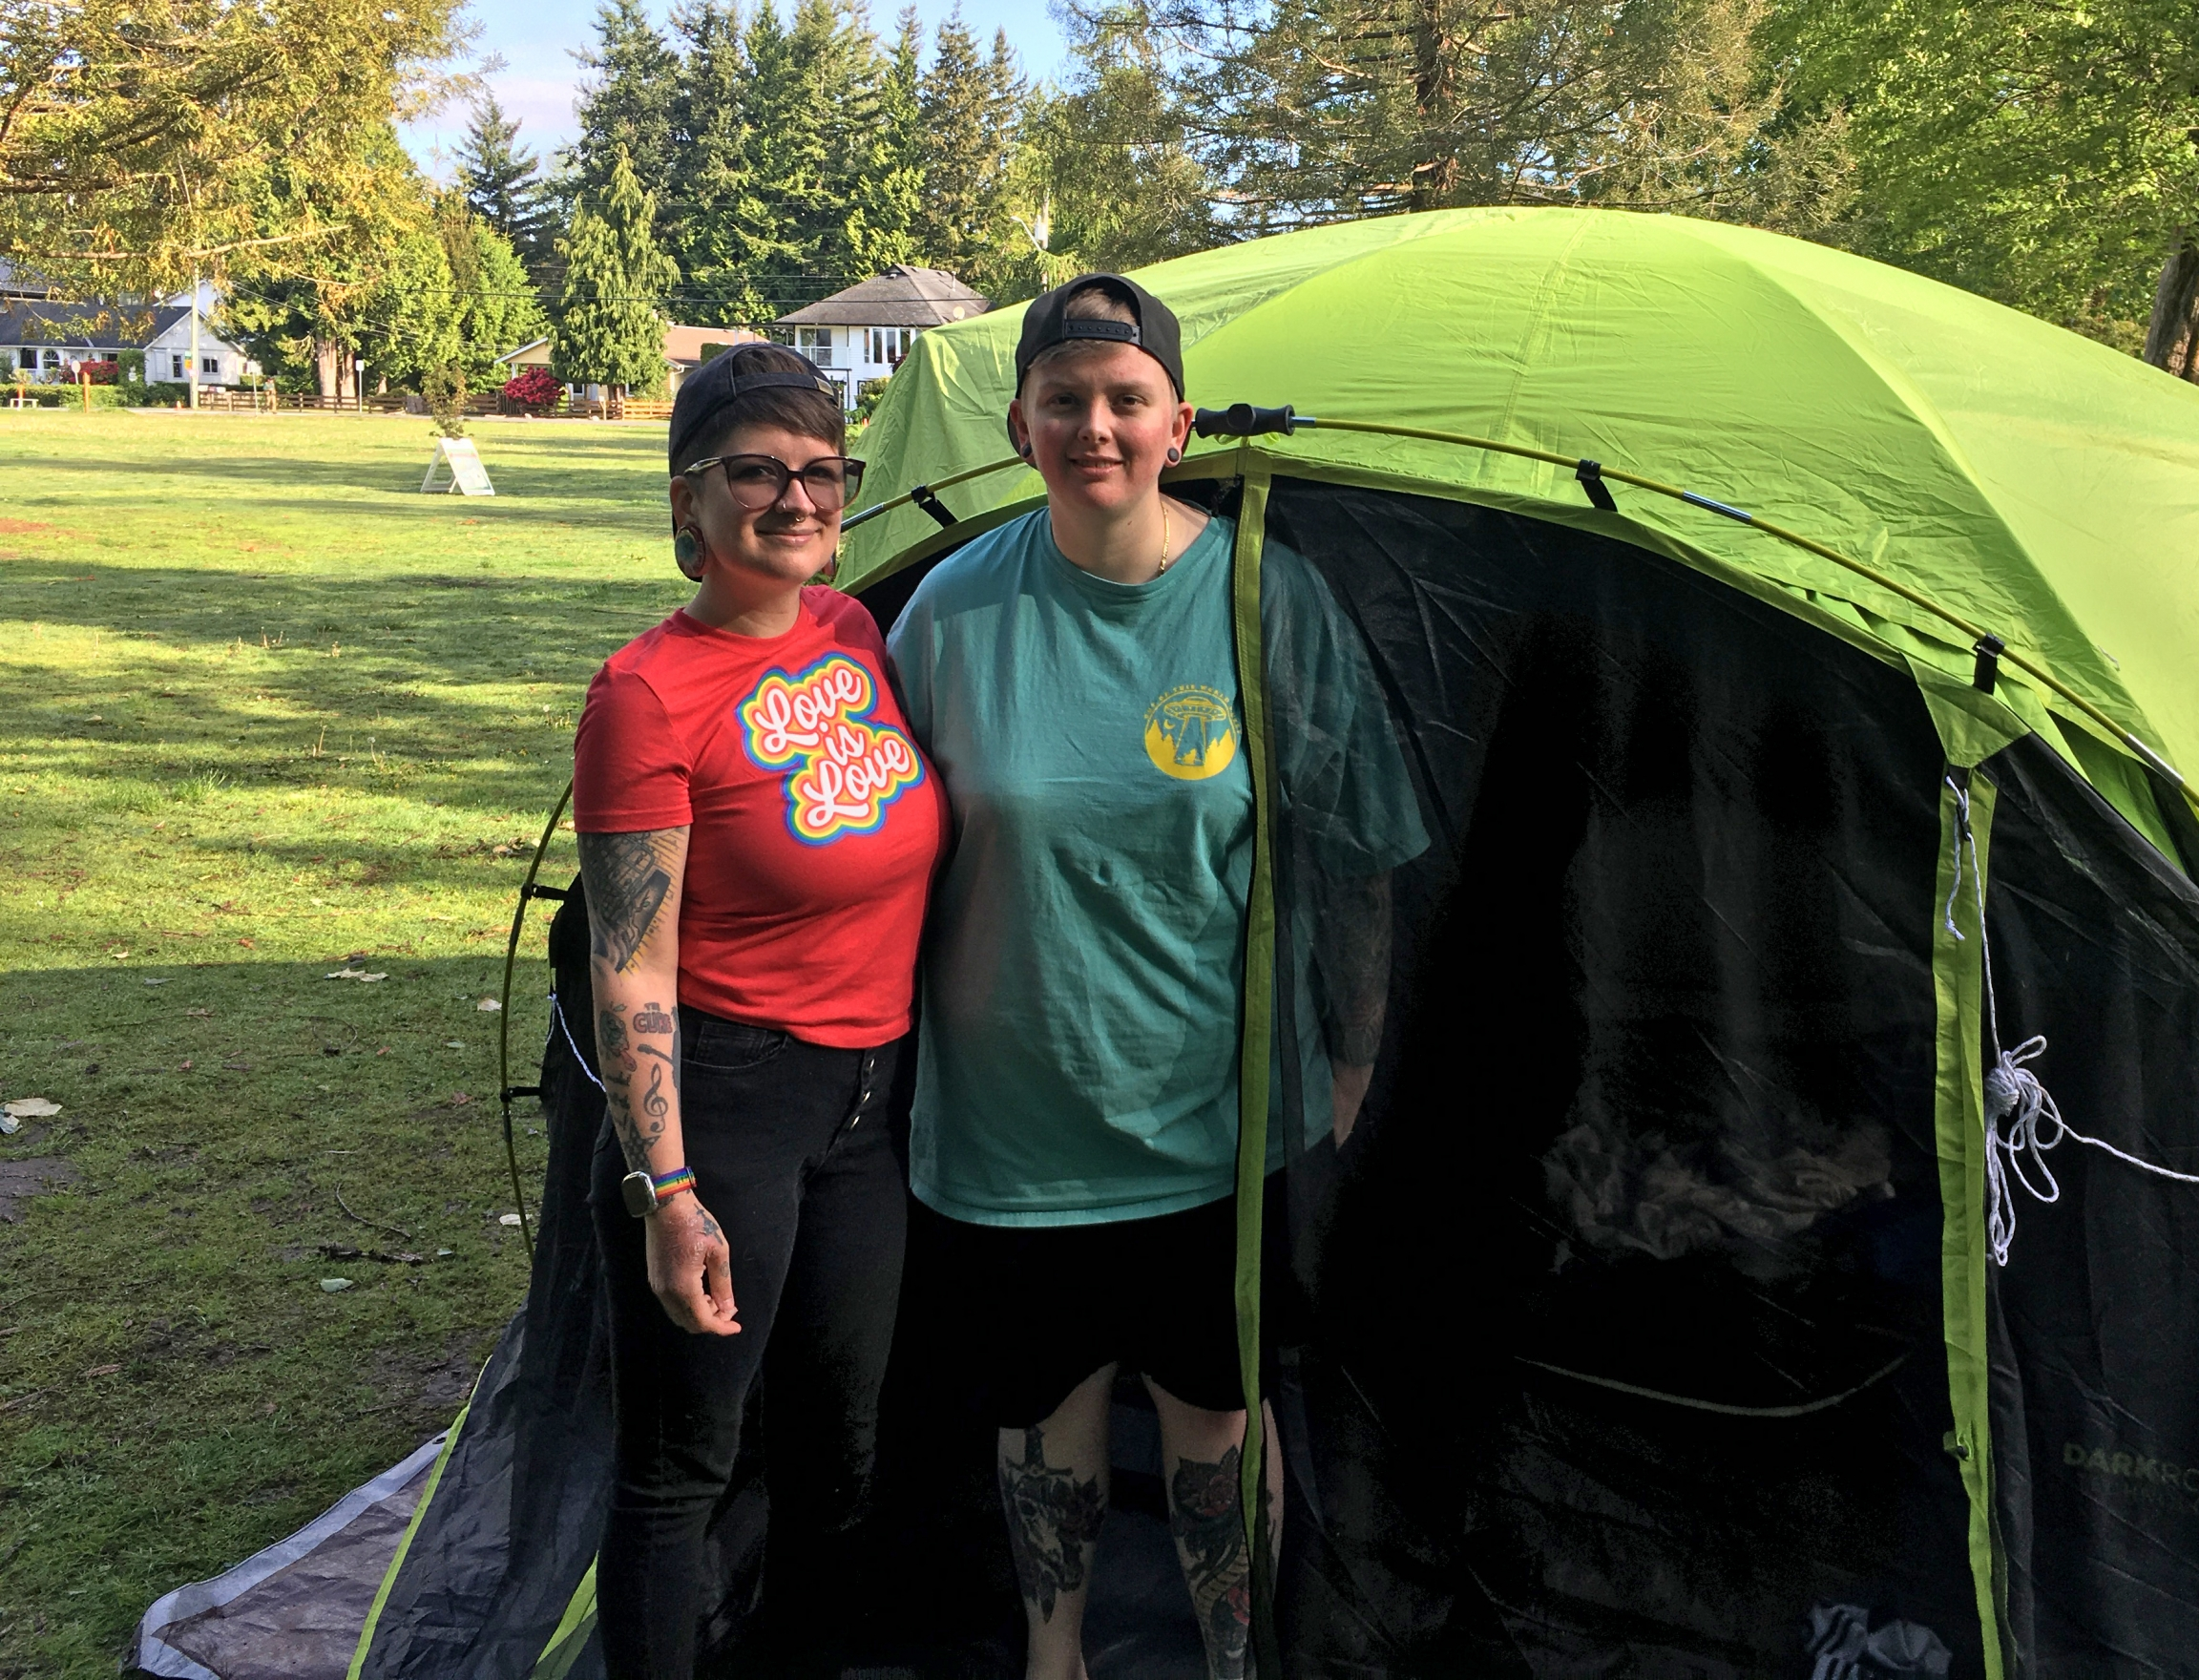 Alexis Gurr (left), of Everett, Washington, and her wife, Katrina Gurr, of Port Moody, British Columbia, pose outside their tent on the USside of Peace Arch Park.